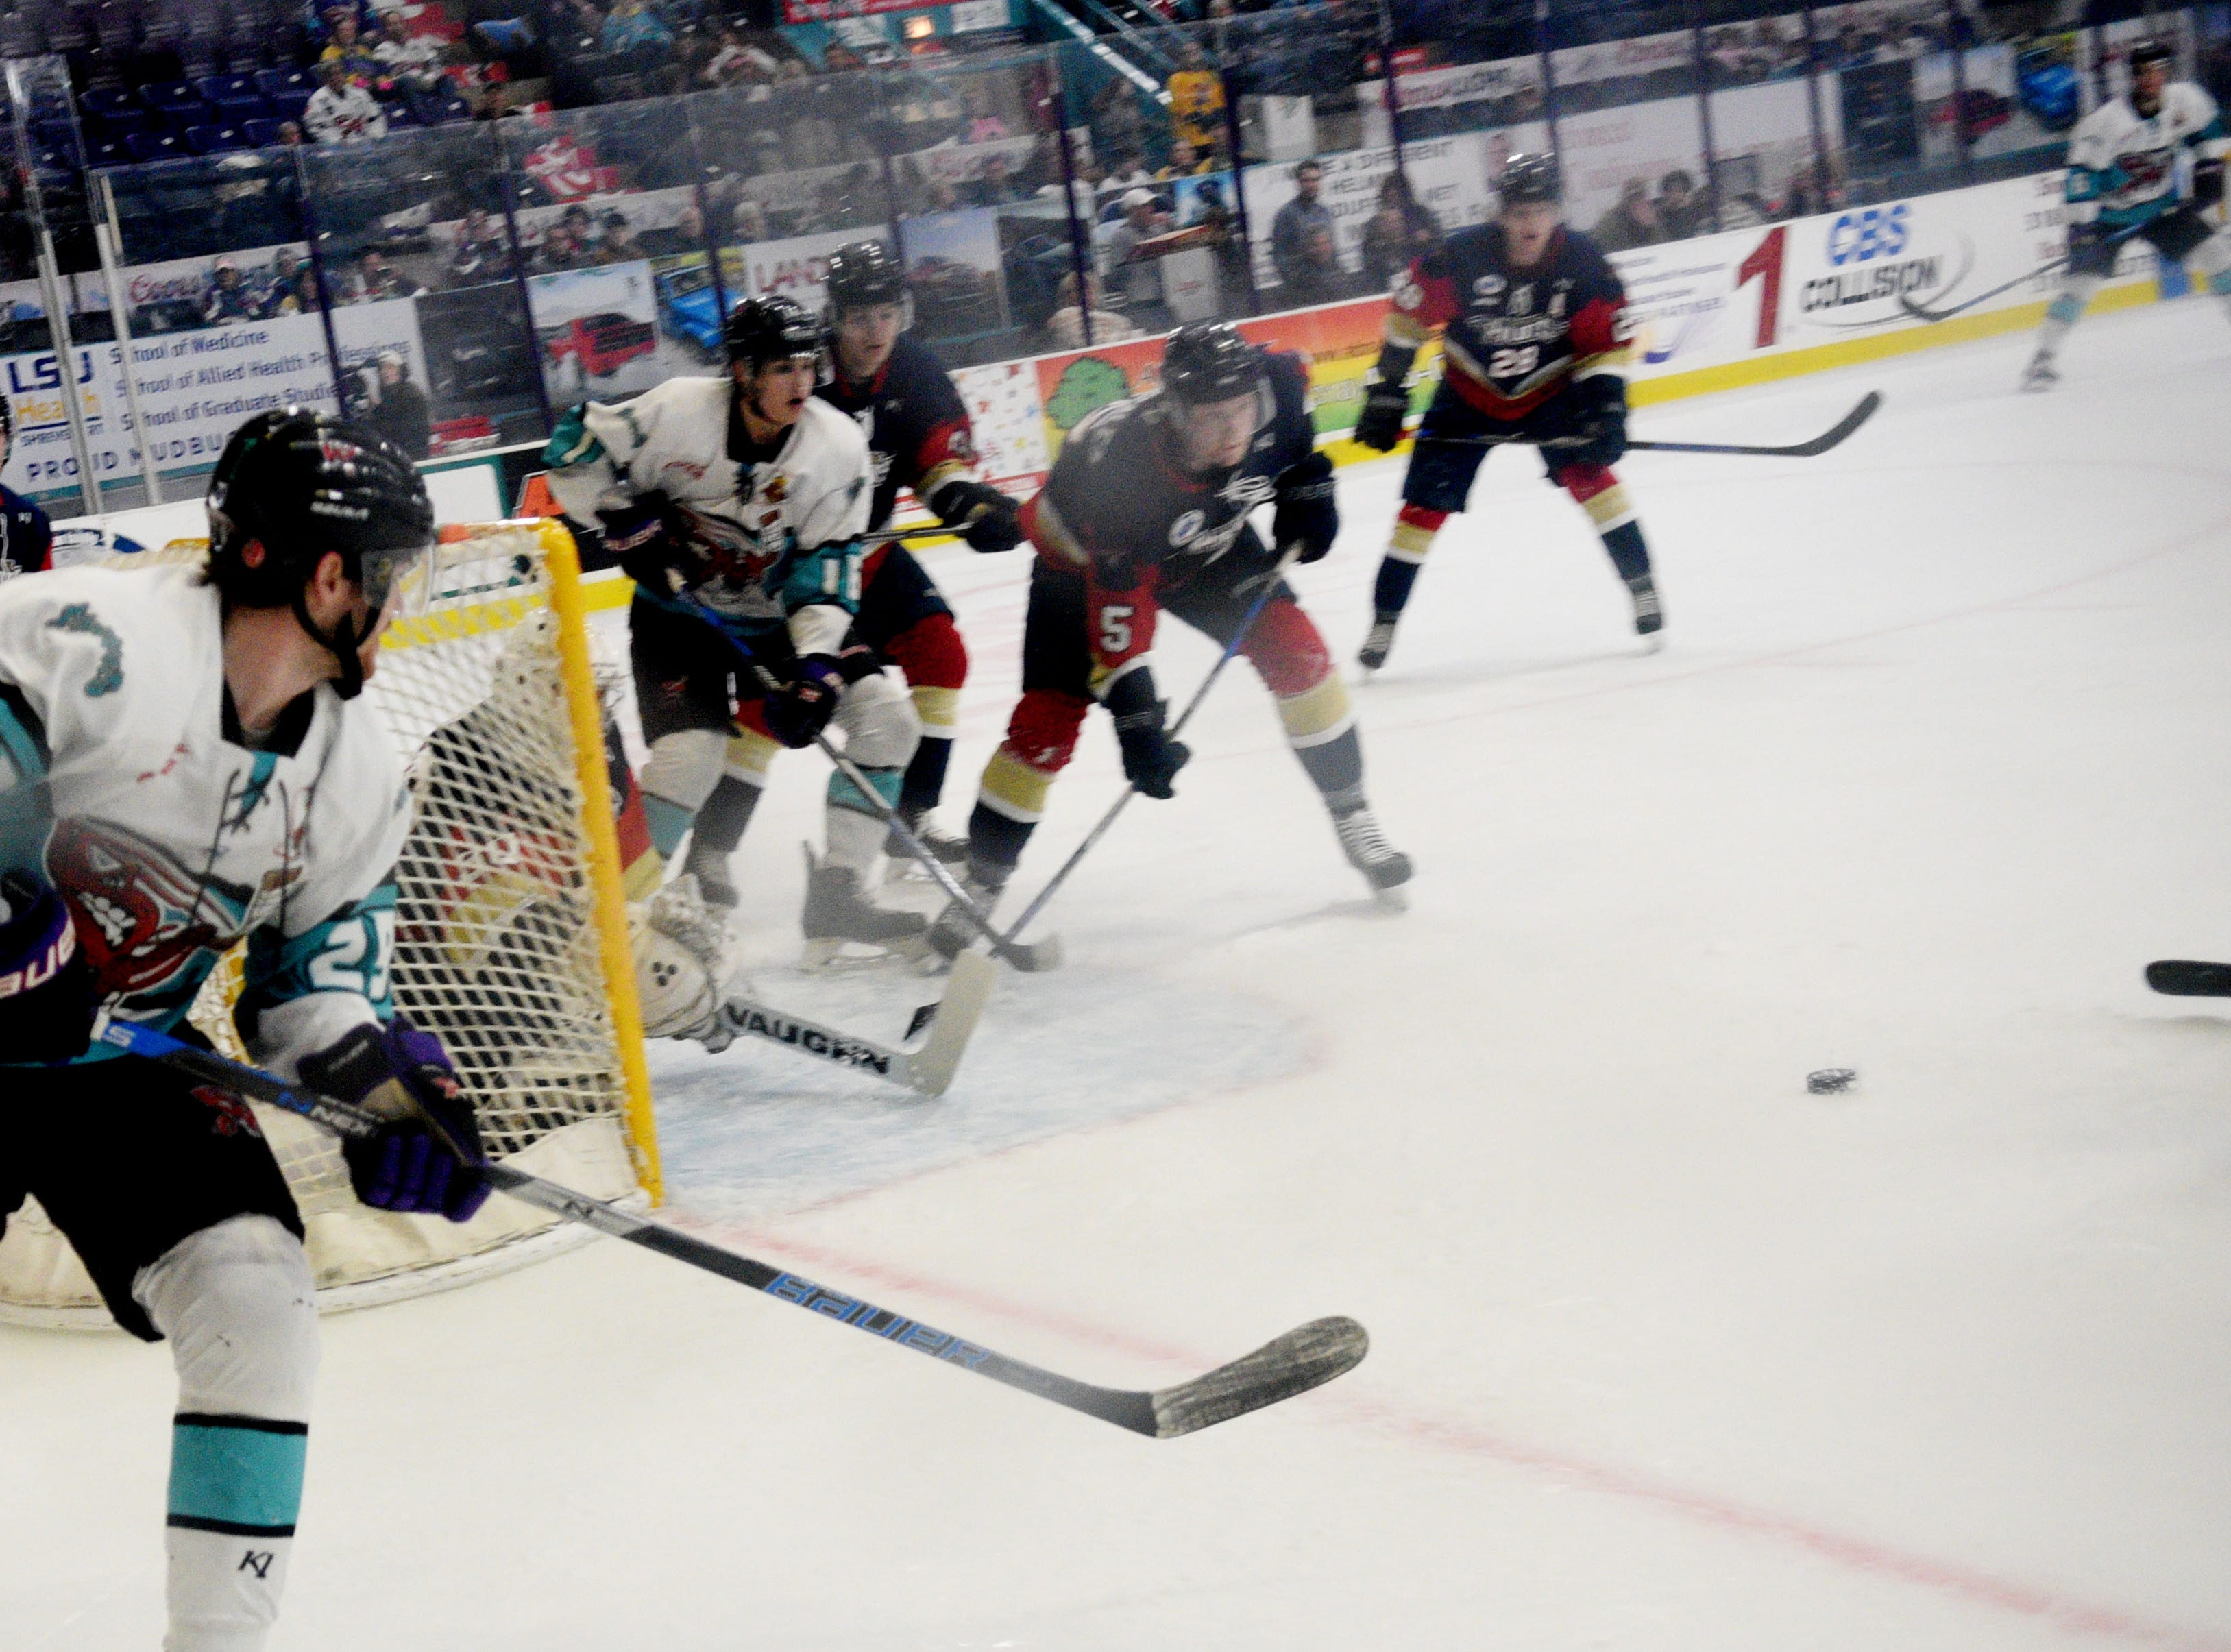 Bring your dog to the Mudbugs game event as they face Topeka Friday evening, March 15, 2019 at George's Pond at Hirsch Coliseum.